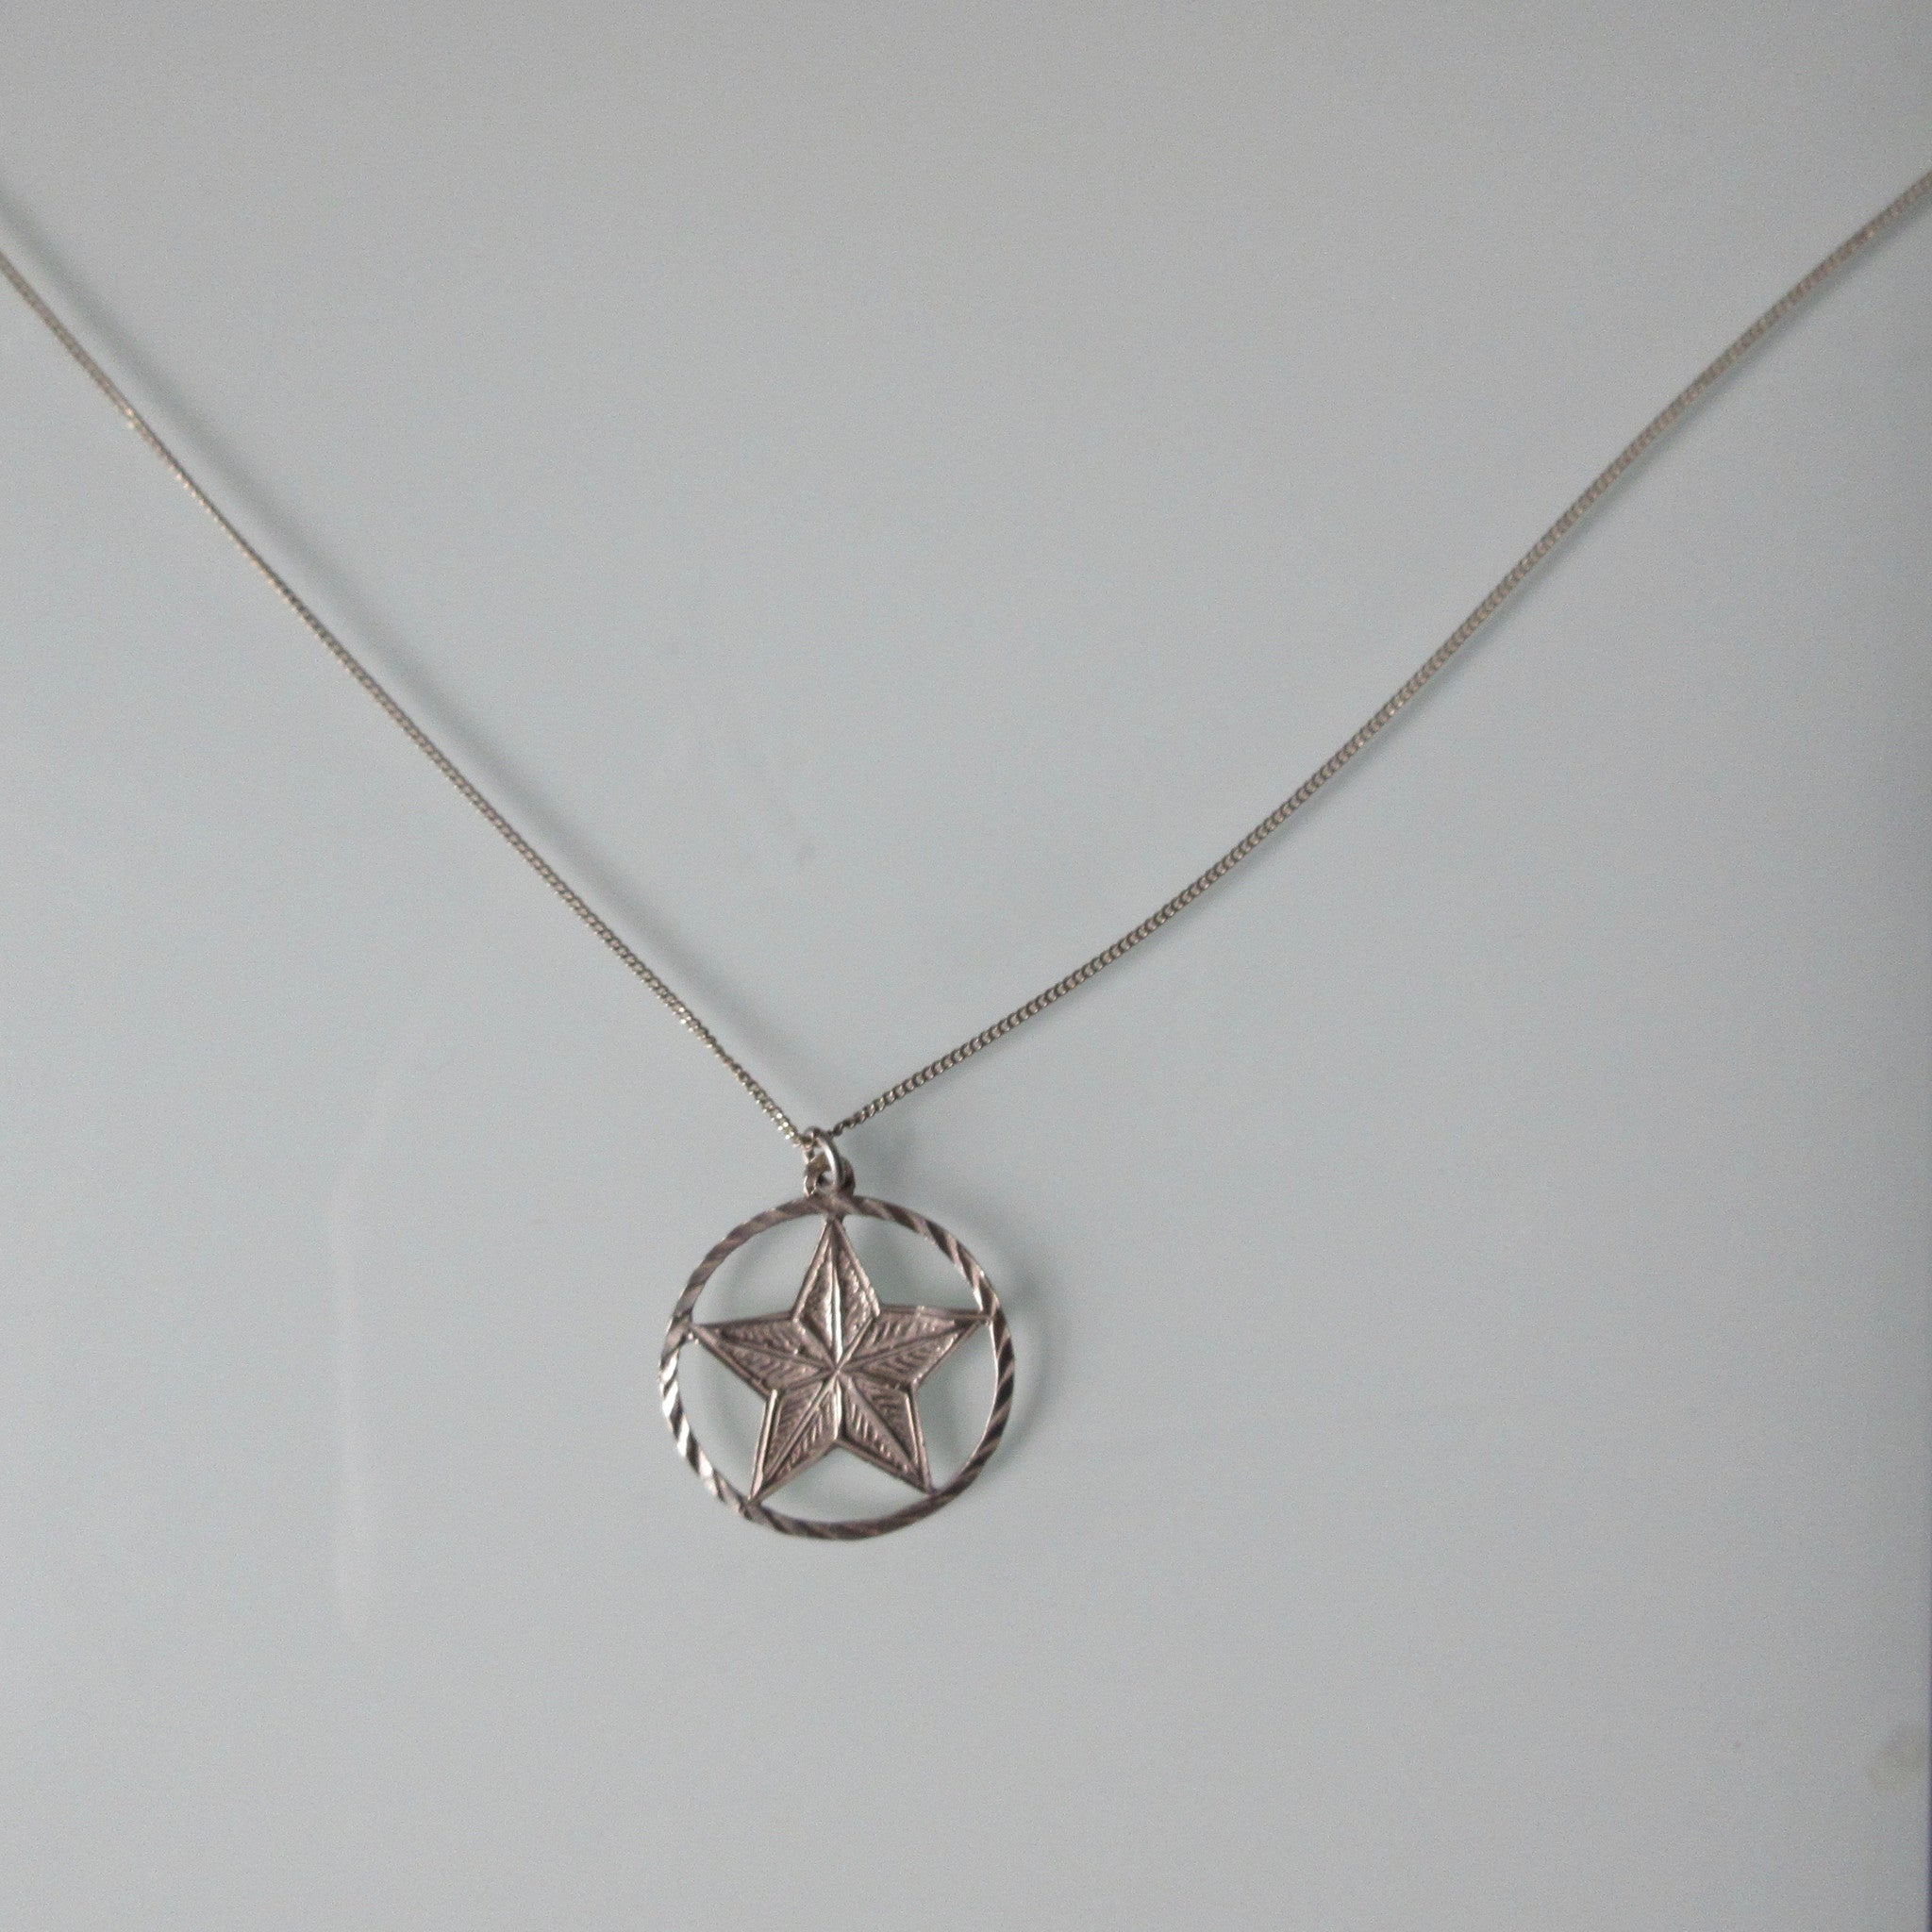 Vintage Sterling Silver Star of David Pendant & Chain